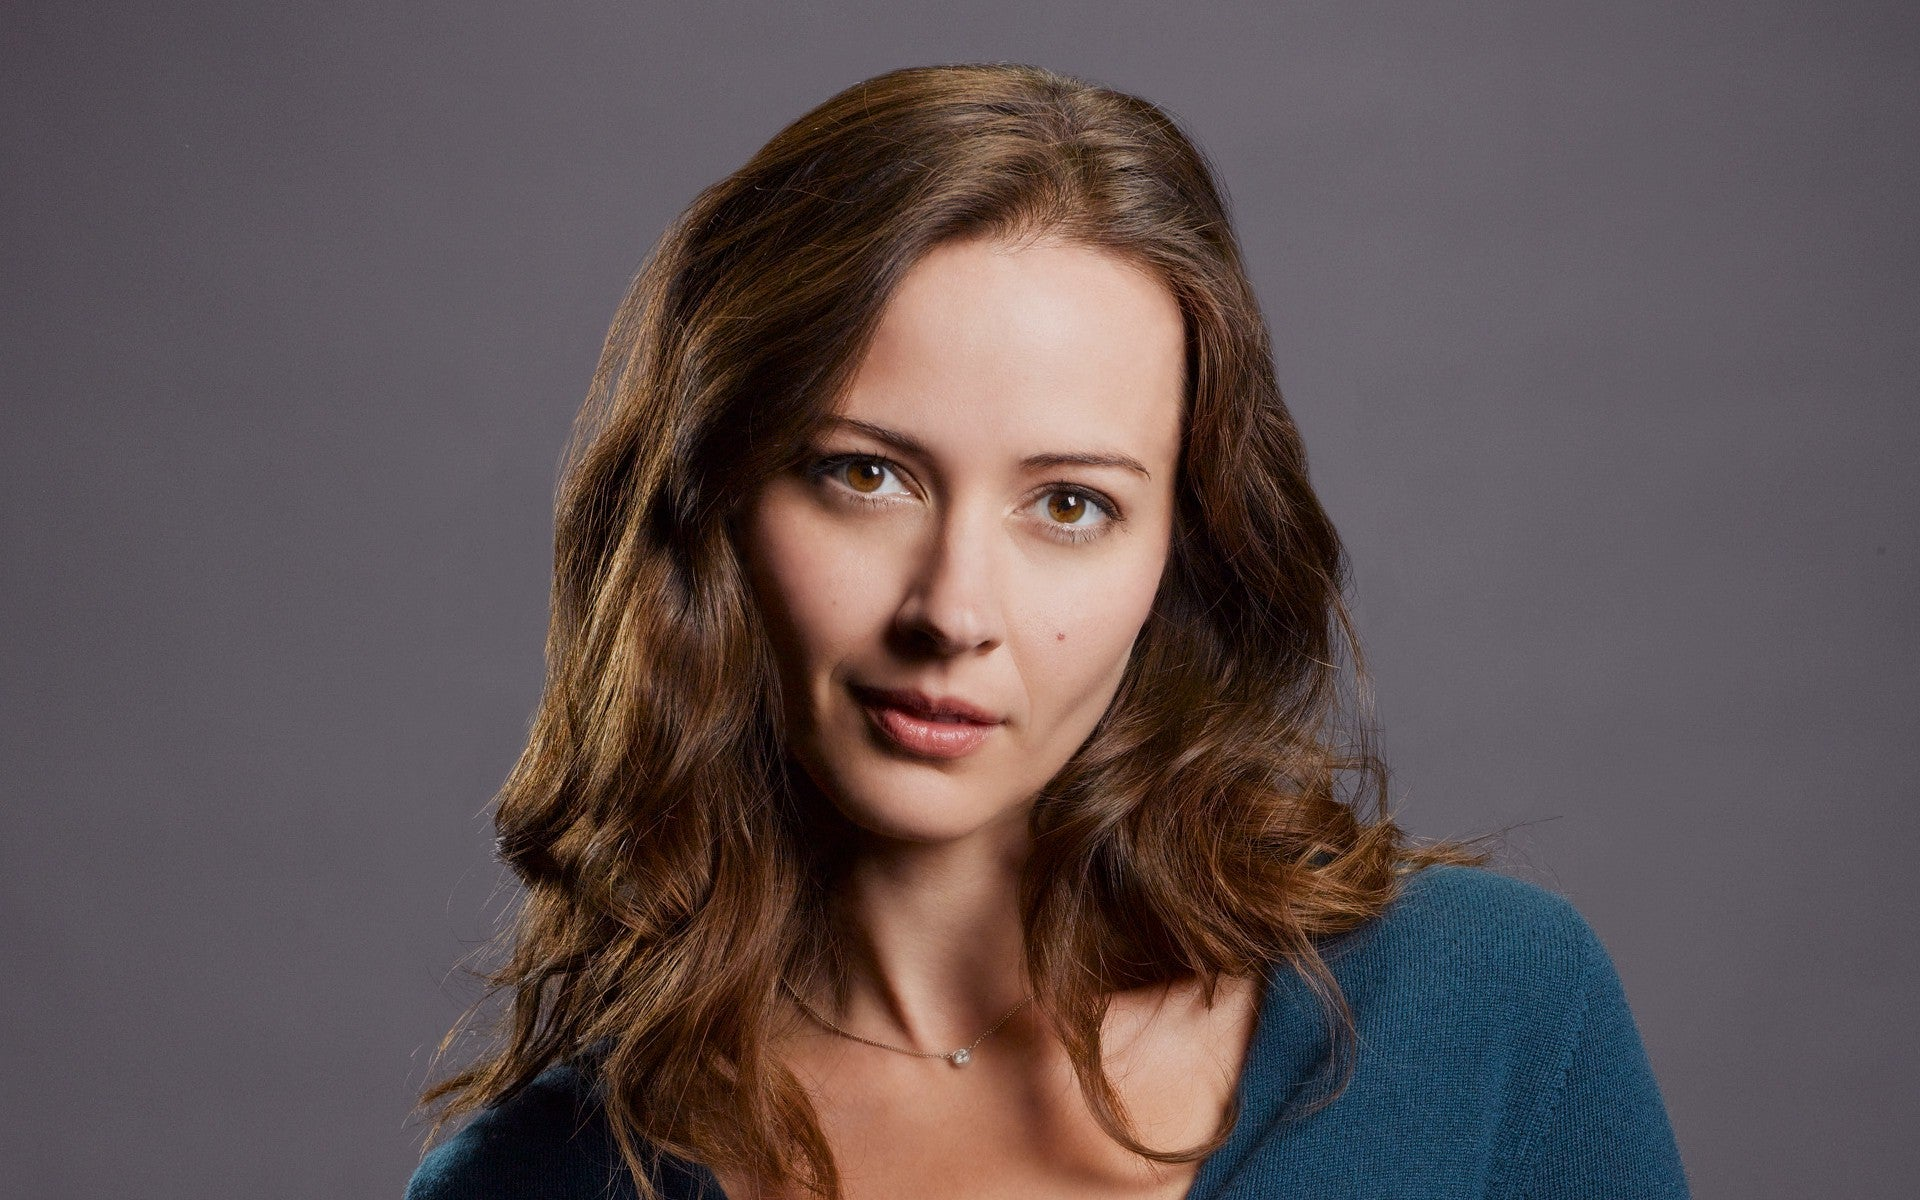 Amy Acker Hot Pics amy acker joins marvel's agents of s.h.i.e.l.d. as the cellist